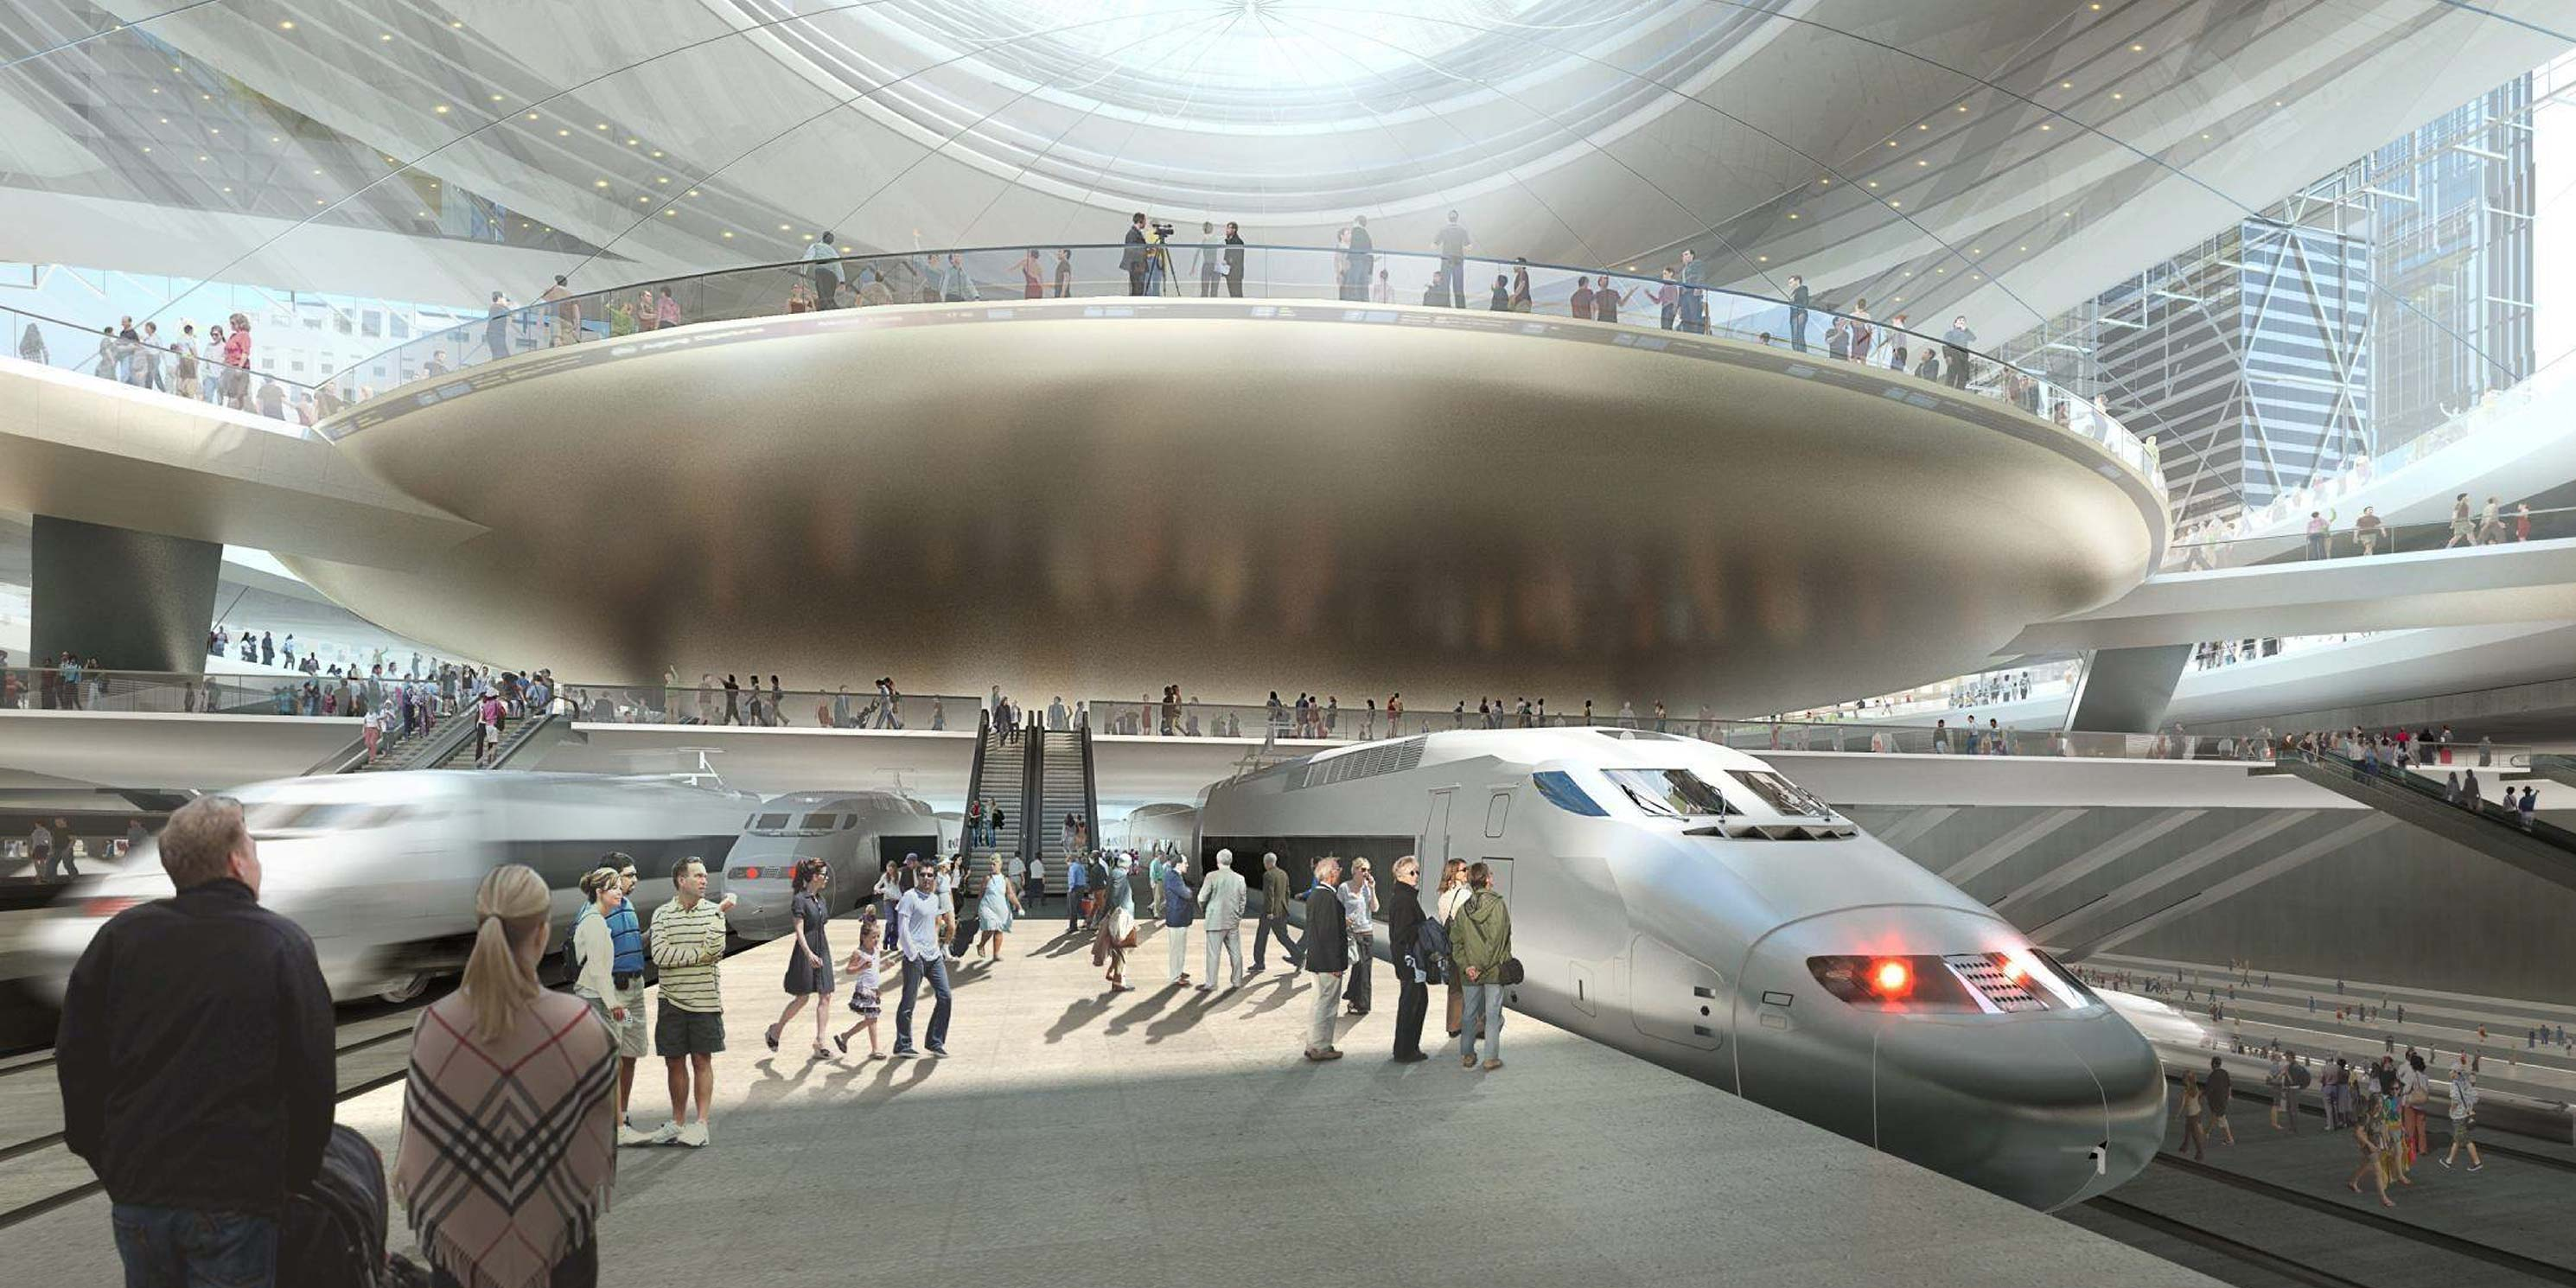 Rendering of a future Penn Station with high-speed trains